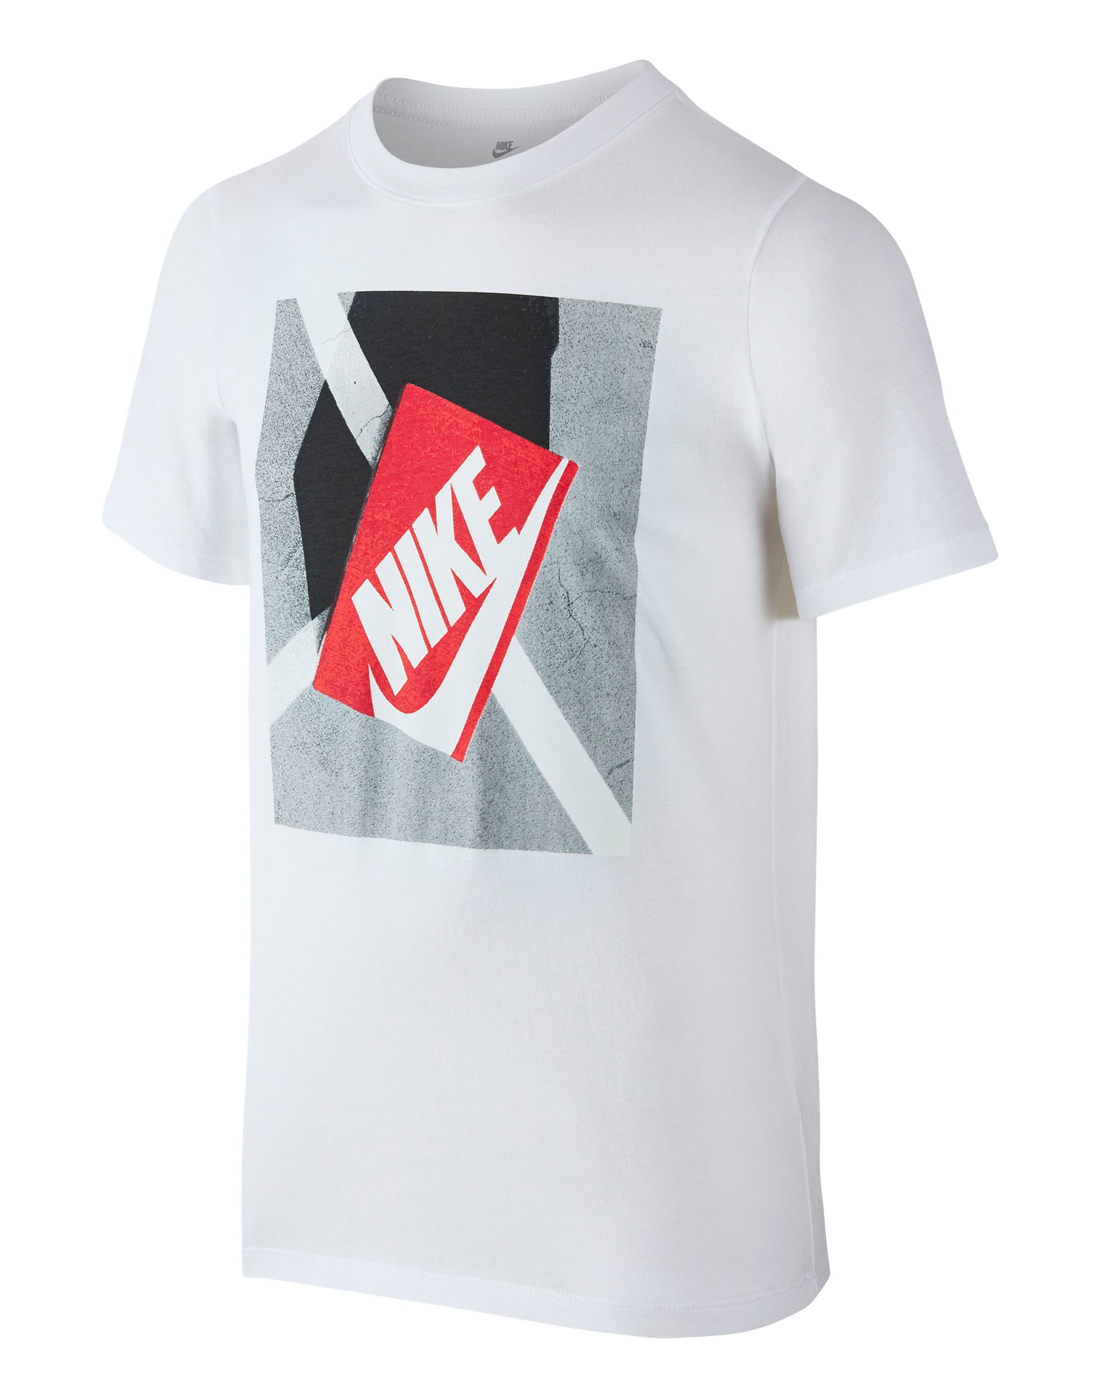 19dbd437ad58e Nike Older Boys Shoe Box T-Shirt | Life Style Sports